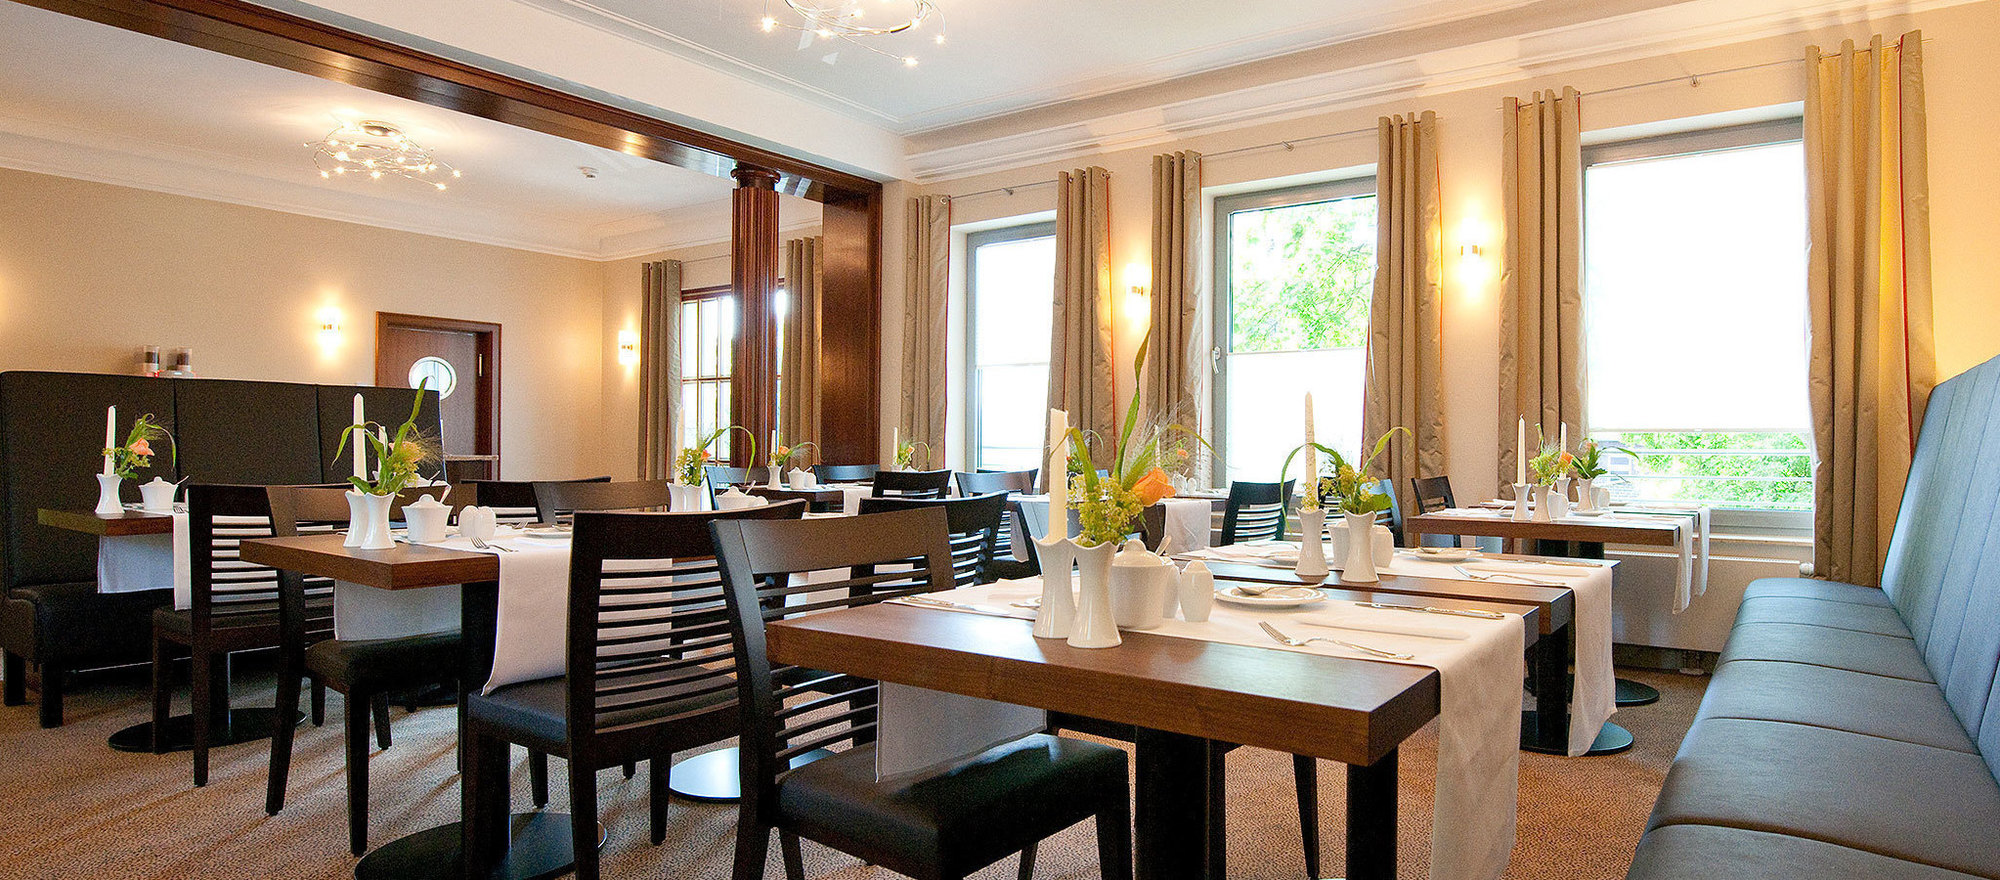 Extensive breakfast buffet at the 4-star hotel Ringhotel Kocks at Muehlenberg garni in Muelheim